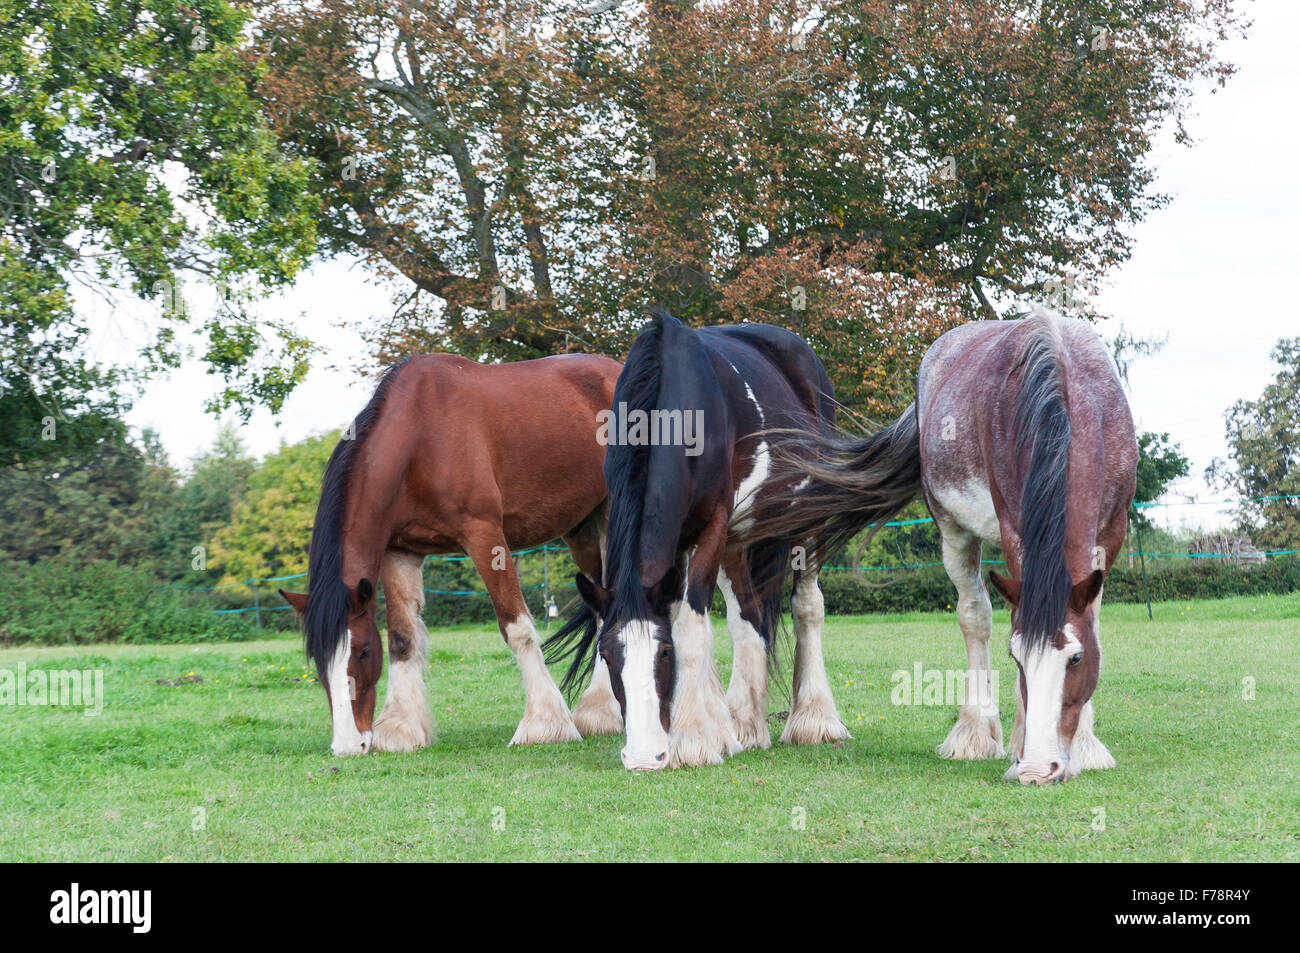 Draught horses grazing in field, Chiltern Open Air Museum, Chalfont St Giles Buckinghamshire, England, United Kingdom - Stock Image